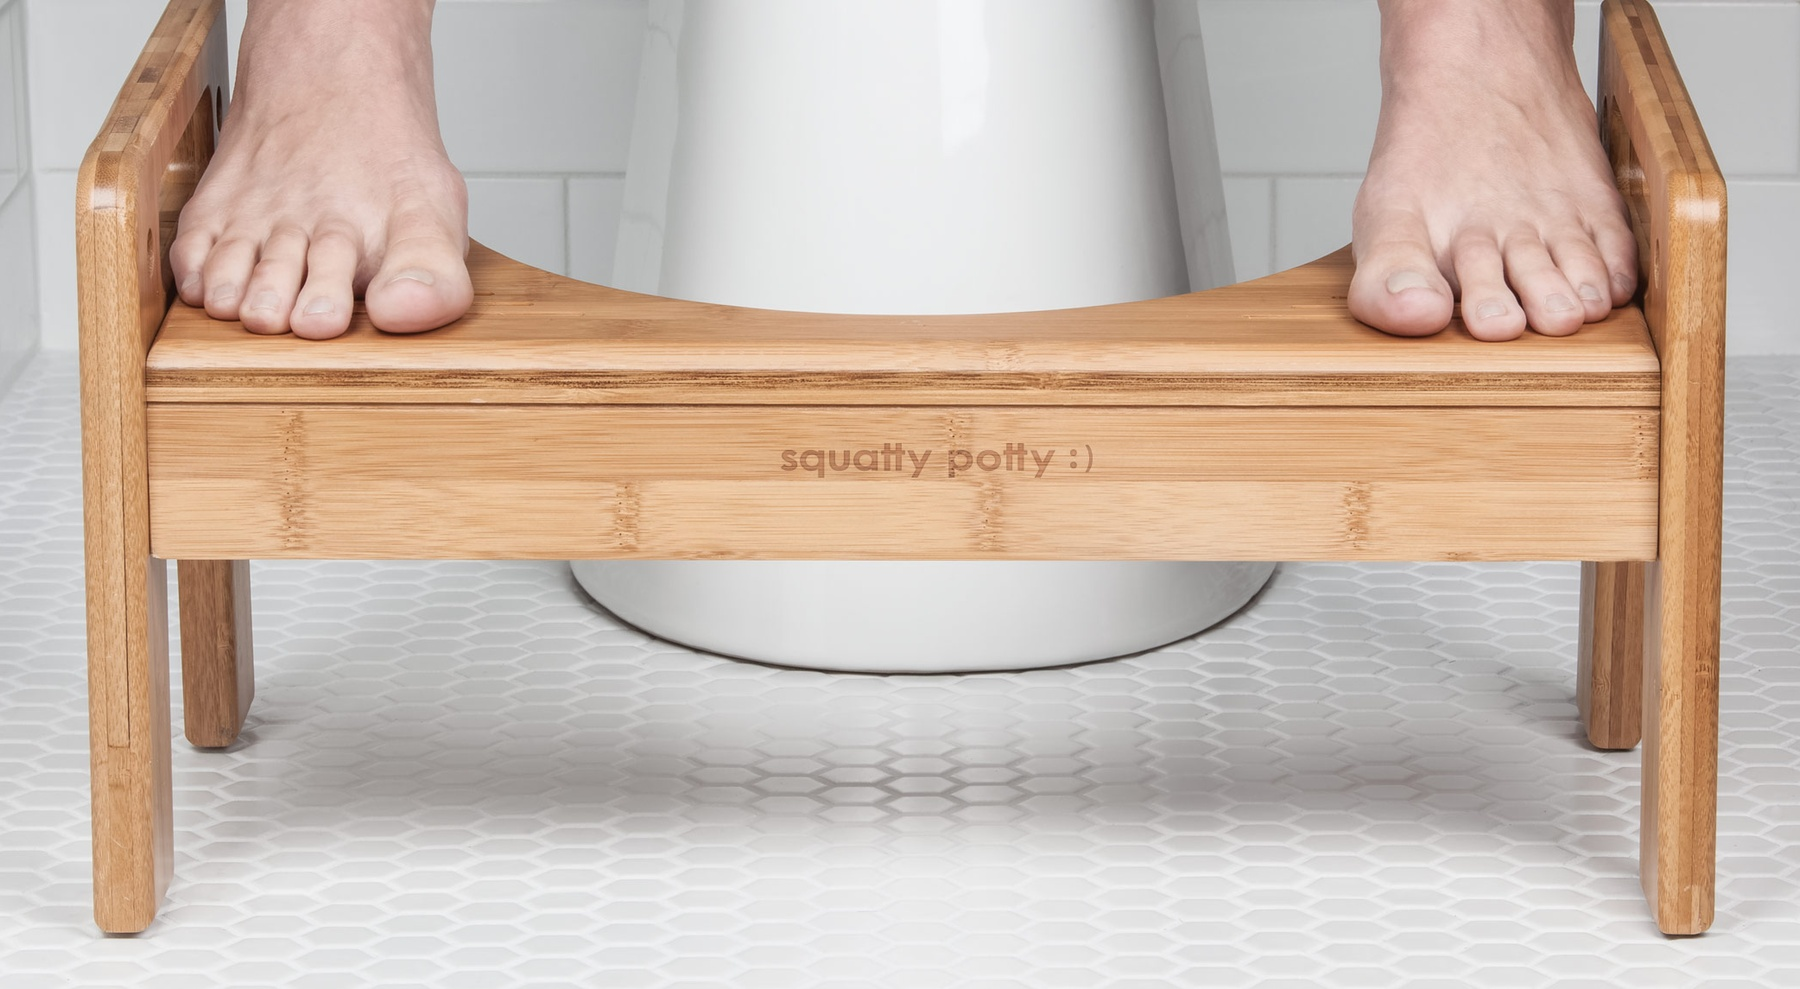 Adjustable Tao Bamboo Squatty Potty